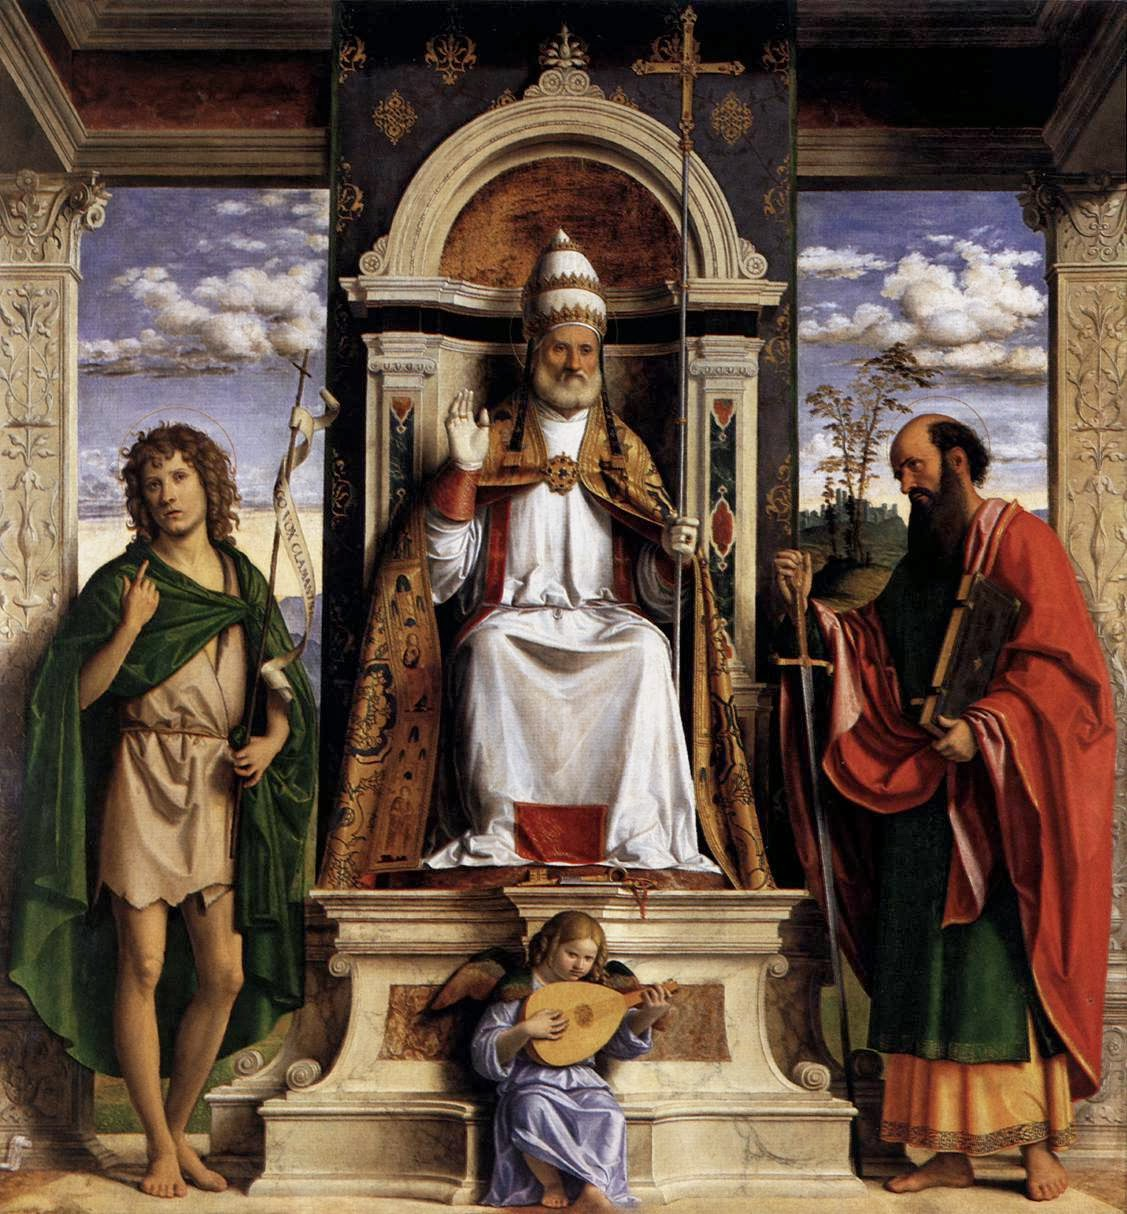 Clerical Whispers: Pope: On the feast day of Saints Peter